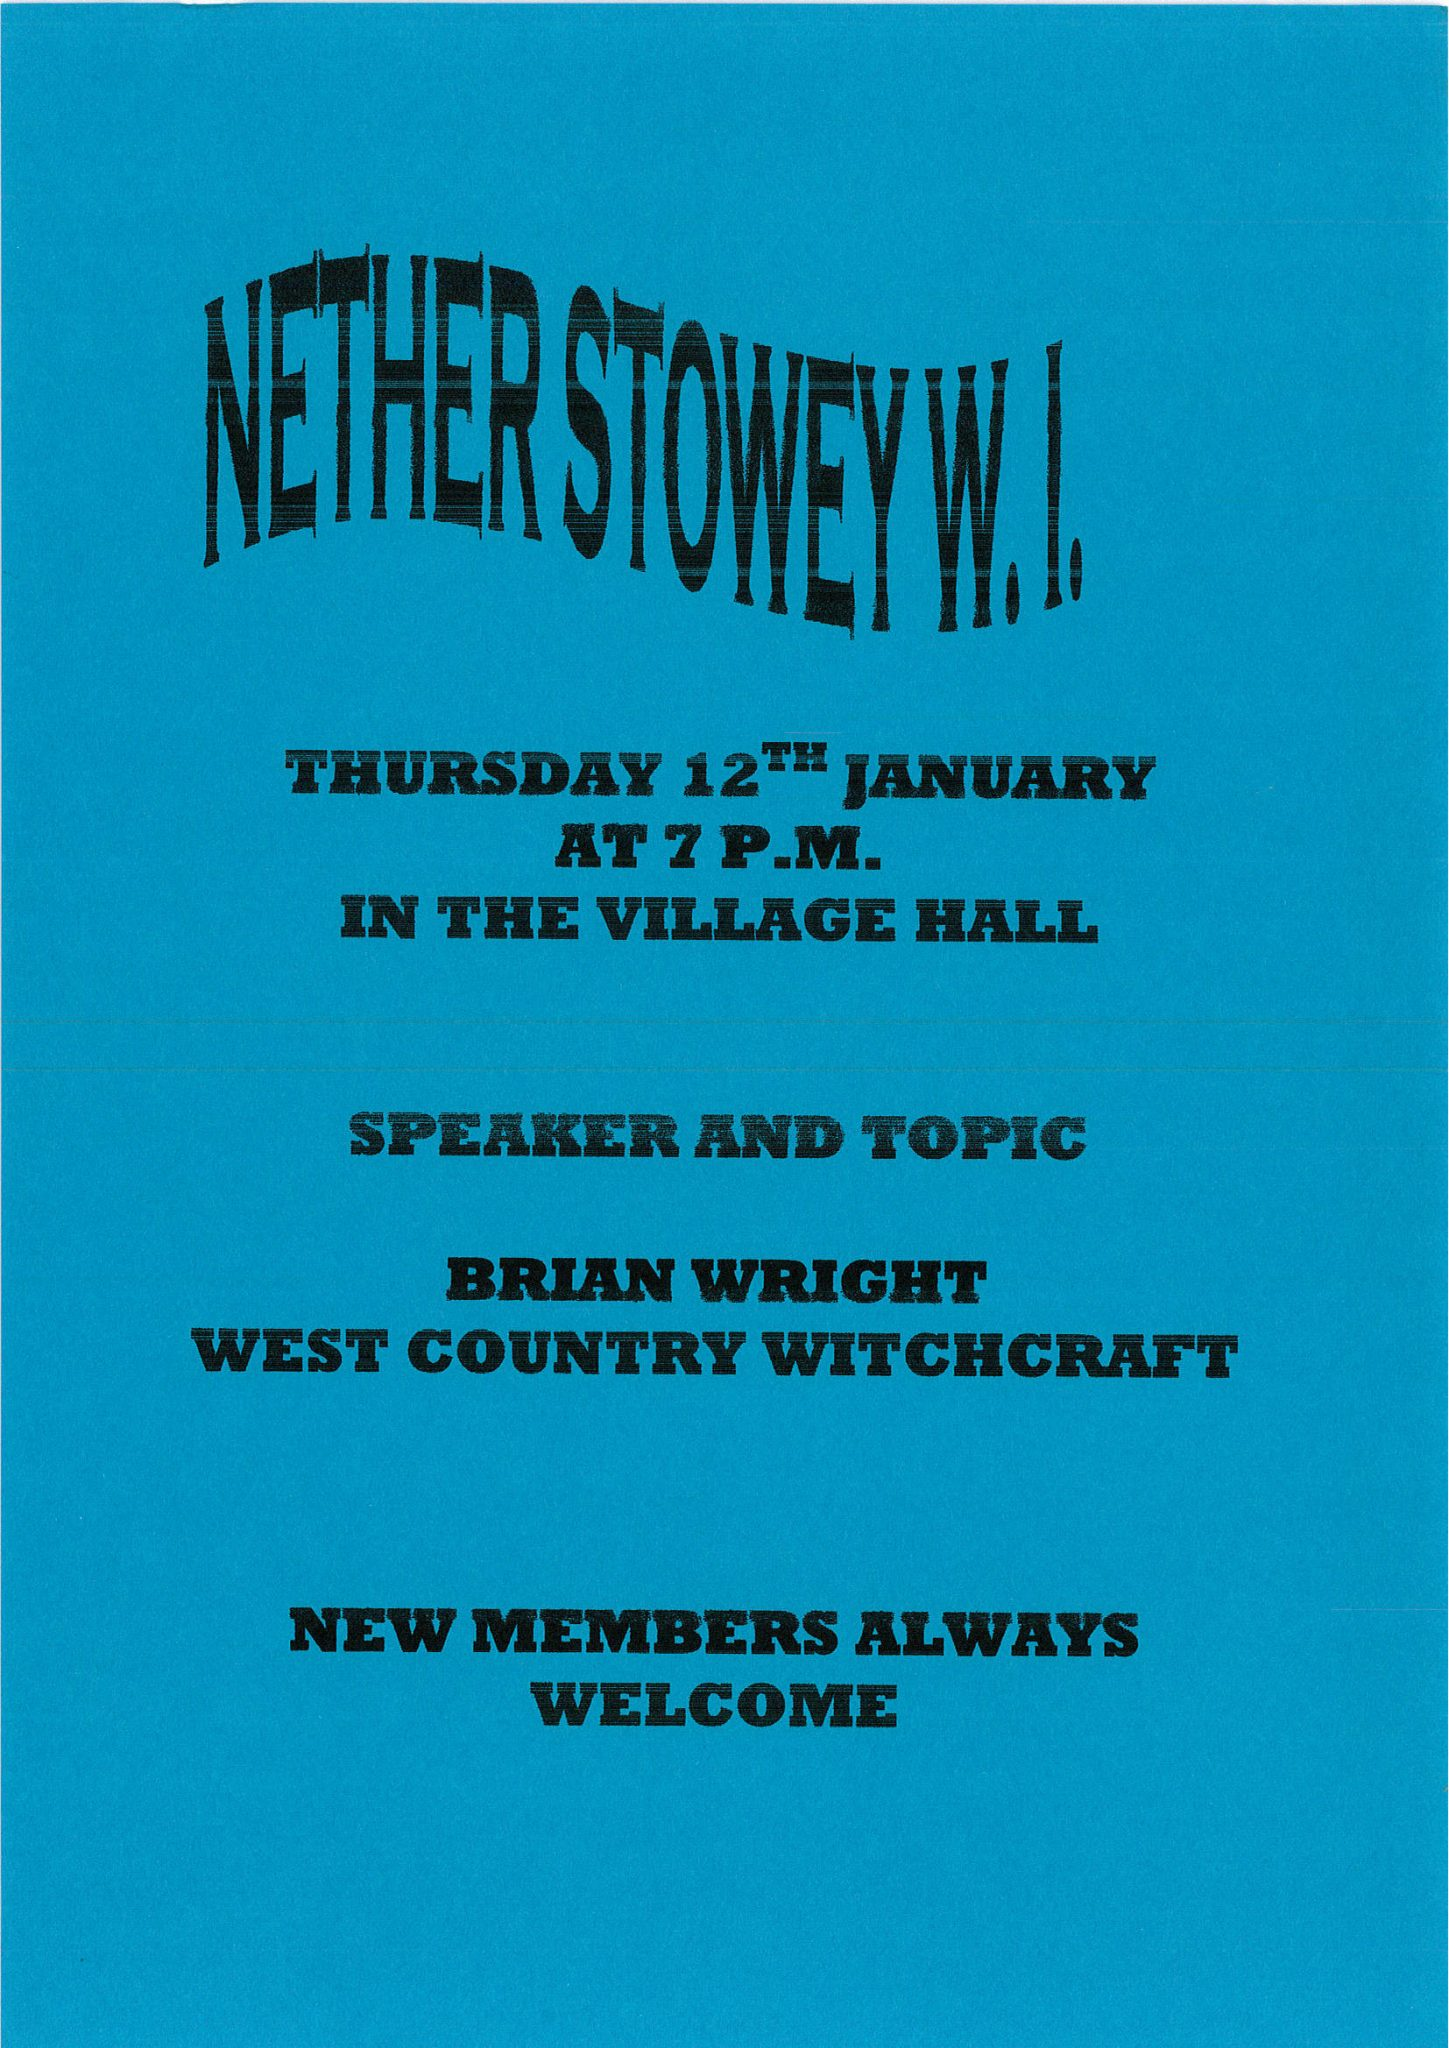 Nether Stowey Womens's Institute @ Nether Stowey Village Hall | Nether Stowey | England | United Kingdom